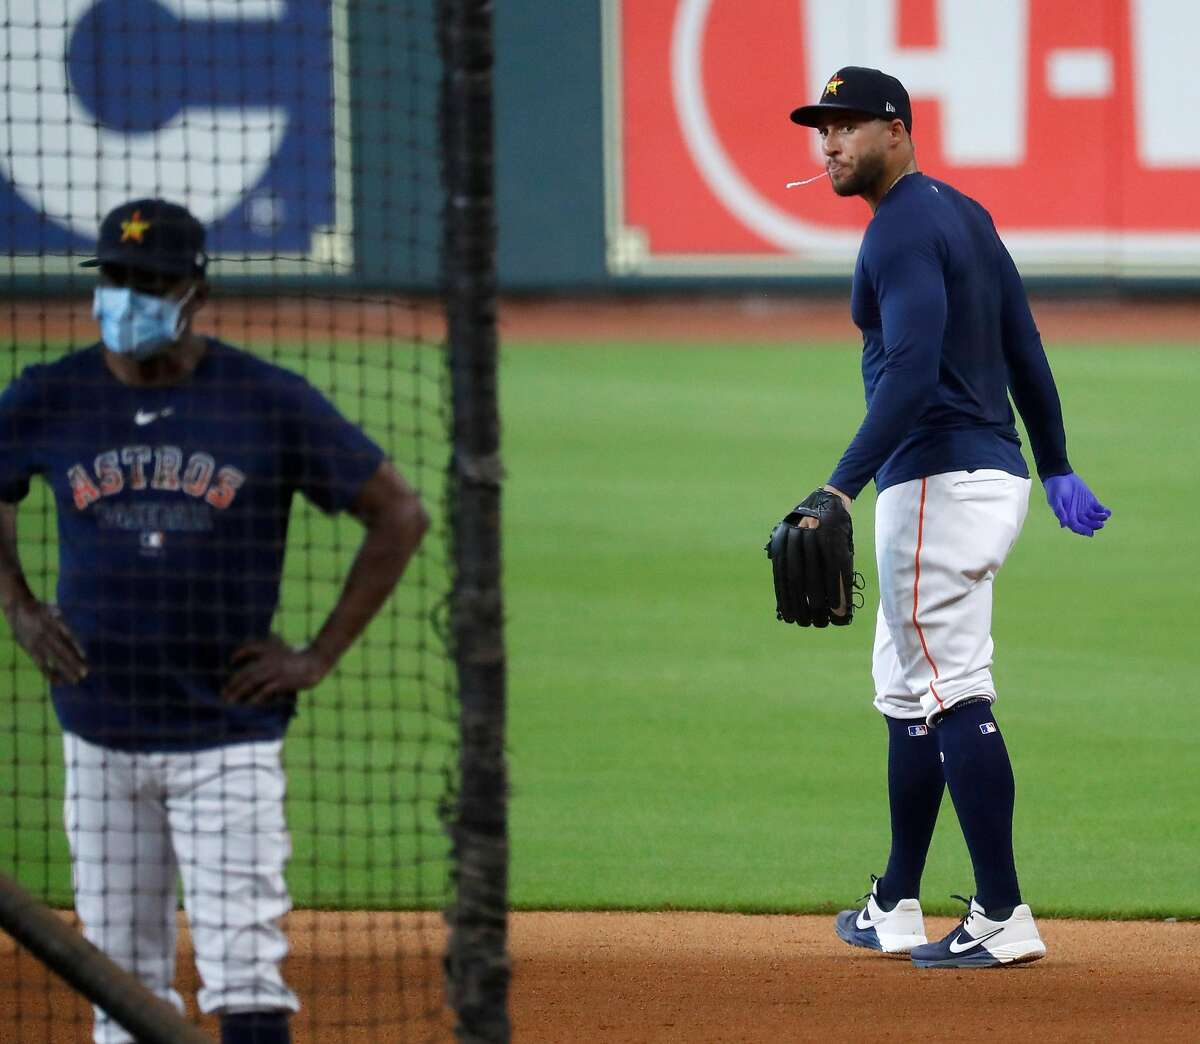 Houston Astros center fielder George Springer spits while wearing a latex glove as he prepared to go shag balls during the Astros summer camp at Minute Maid Park, Saturday, July 4, 2020, in Houston.